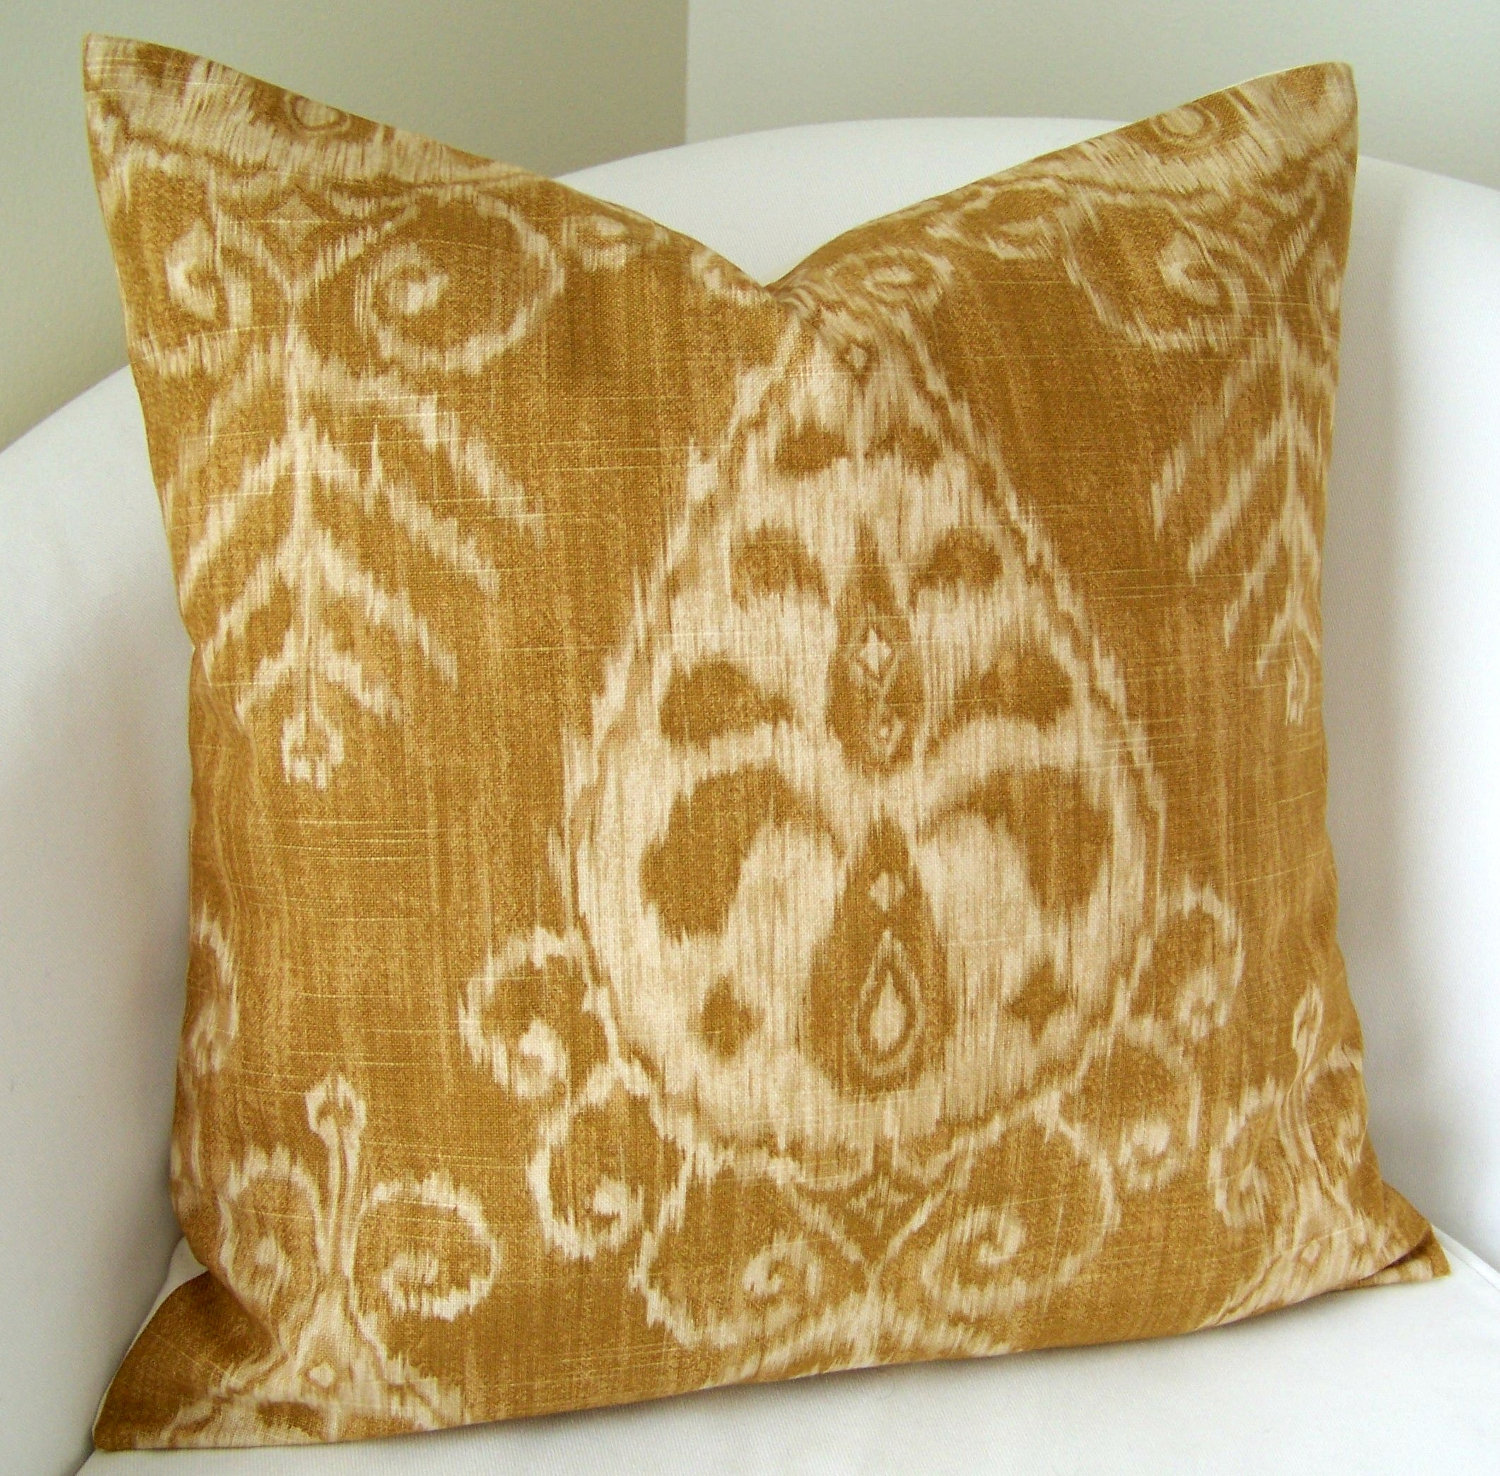 Gold Throw Pillows | Throw Pillows at Target | Pillows Target